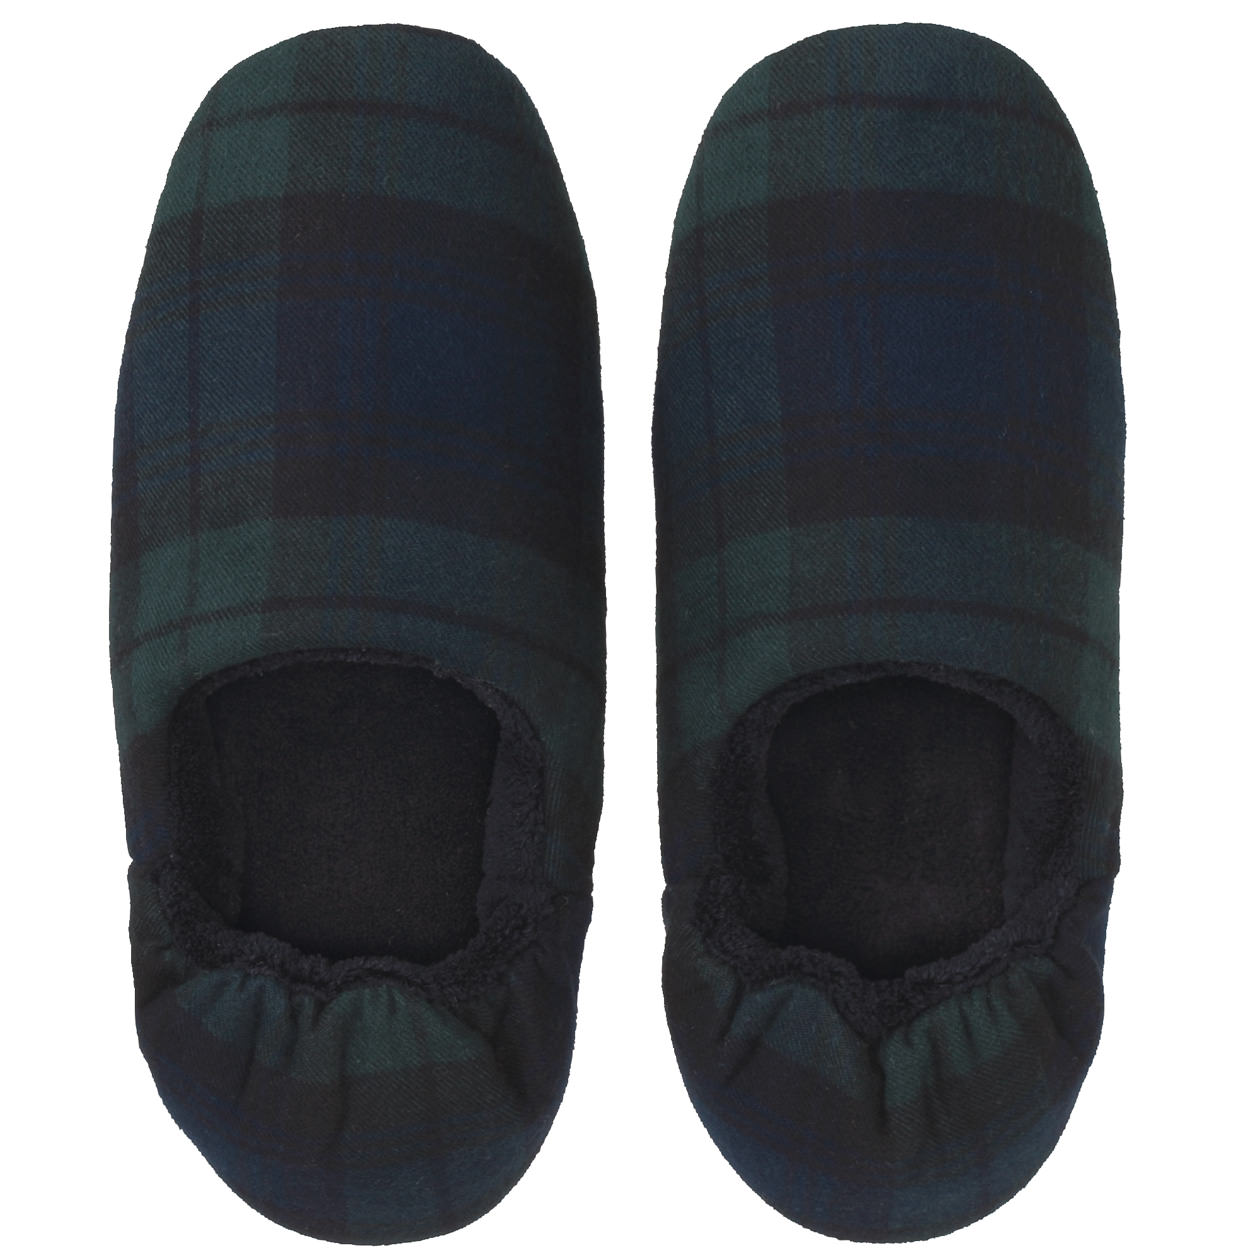 b8ecd4b2be16 FLANNEL SOFT ROOM SHOES M NAVY M23.5-25cm